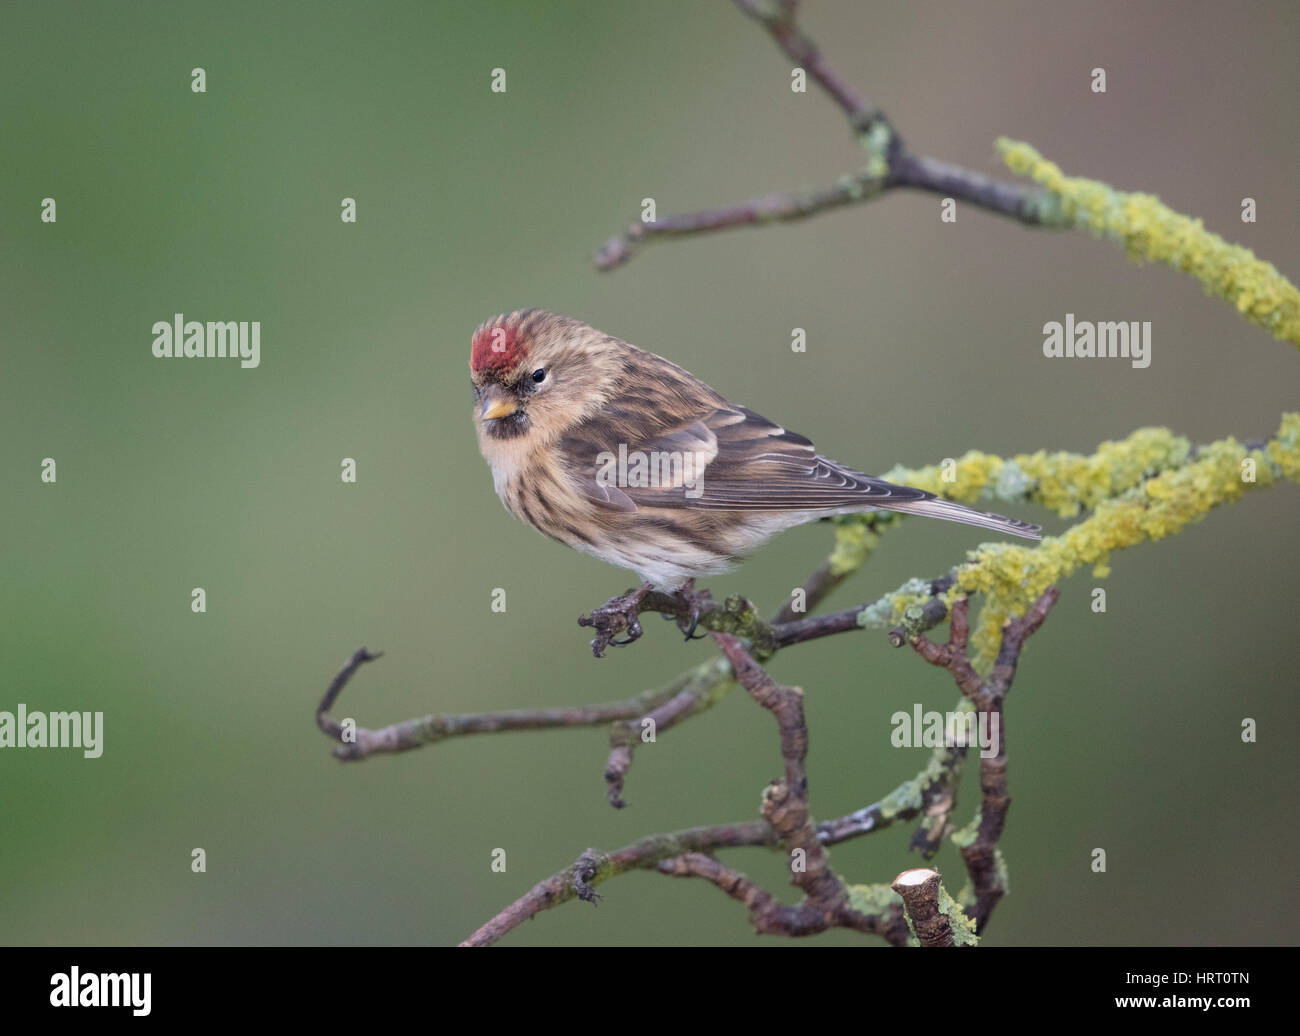 Redpoll  on a lichen covered branch,Wales/Shropshire borders, uk,winter,2017 - Stock Image